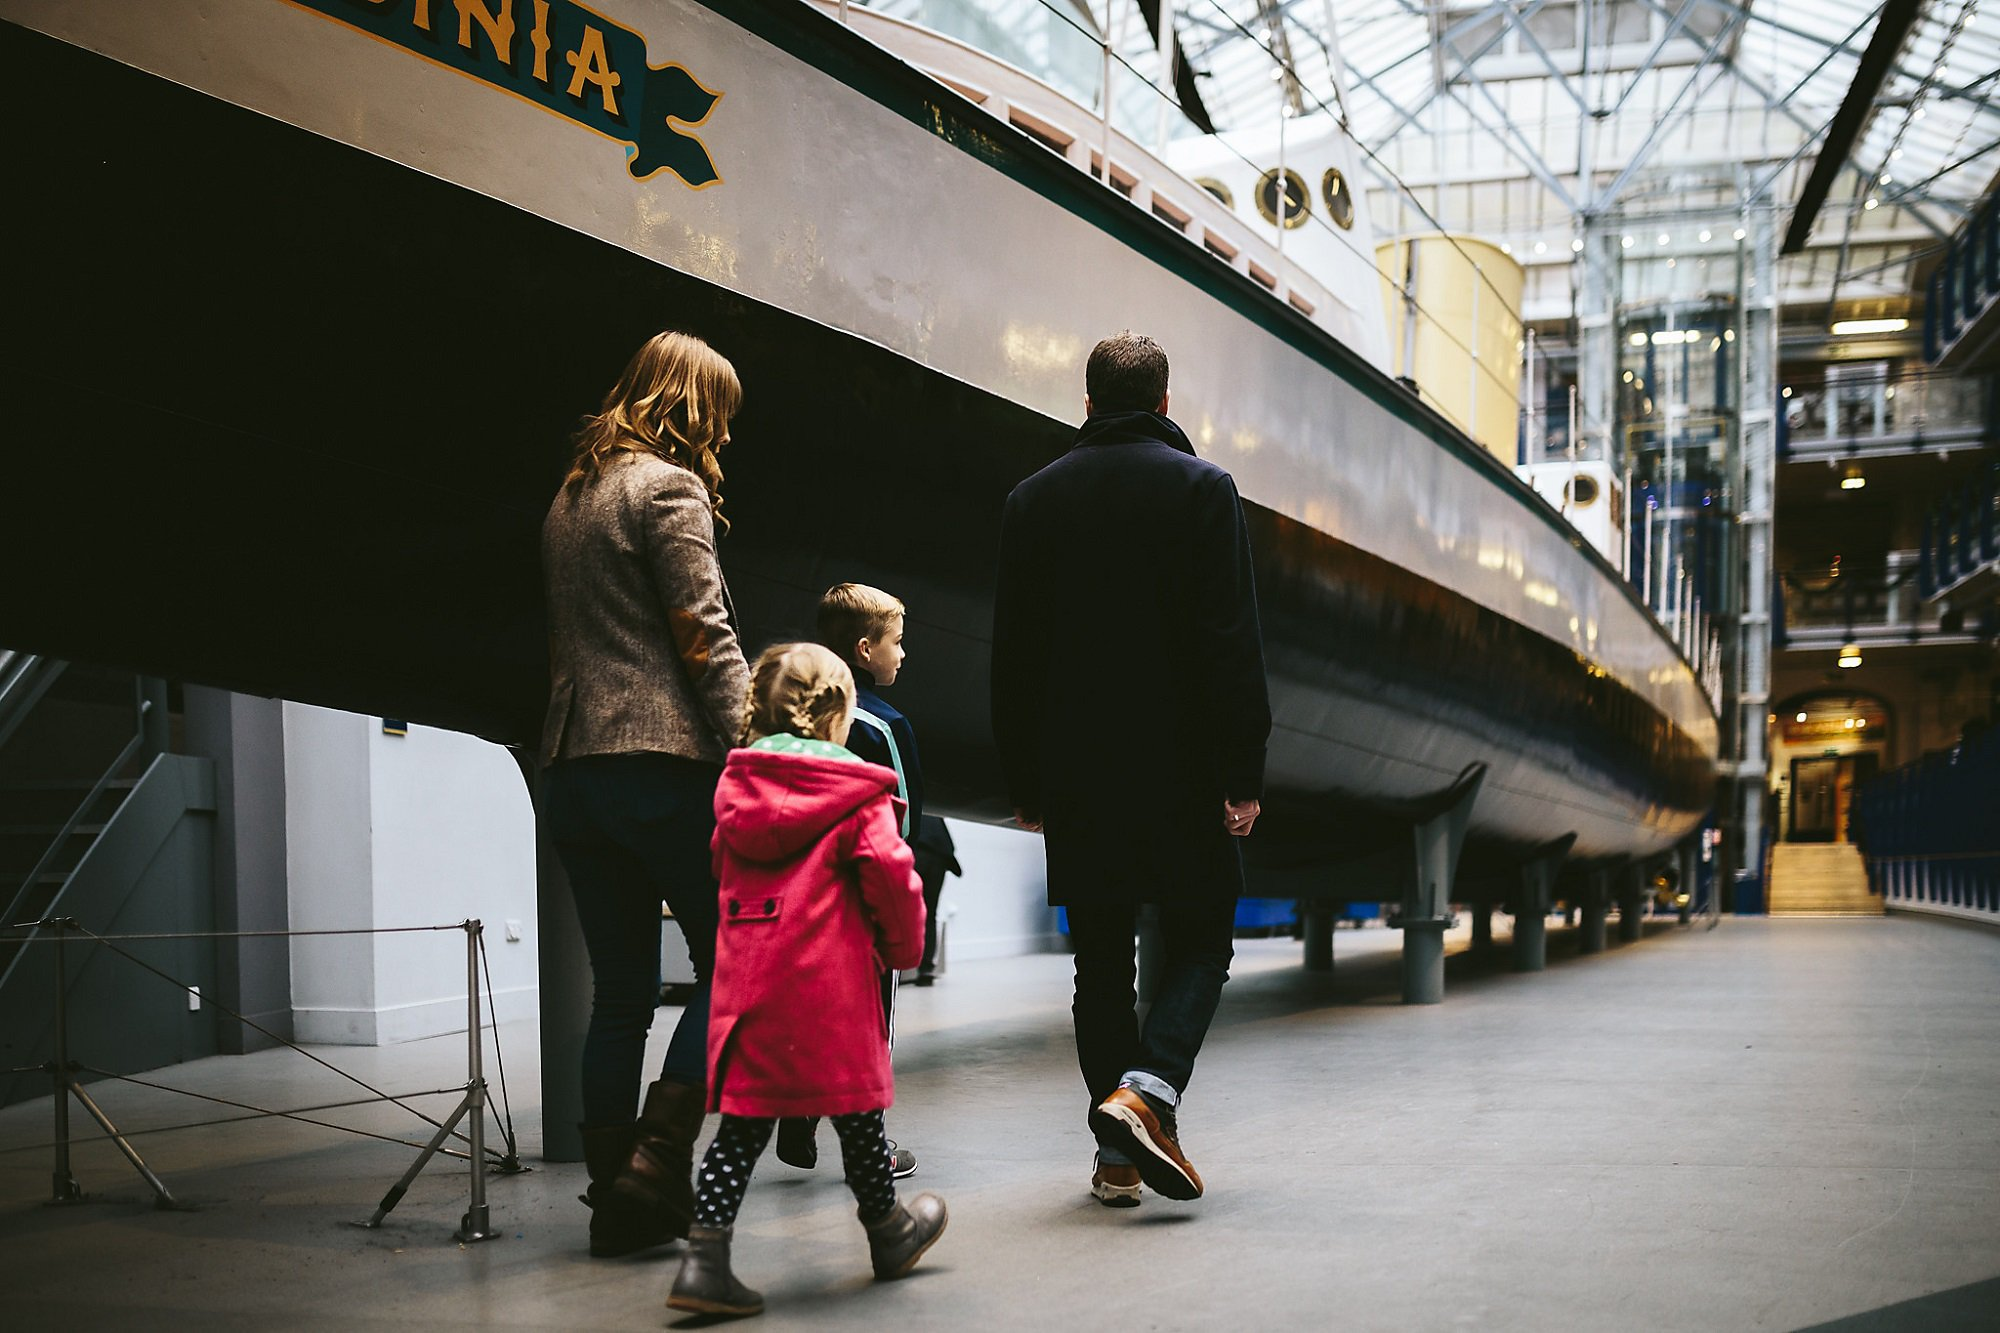 Turbinia at Discovery Museum